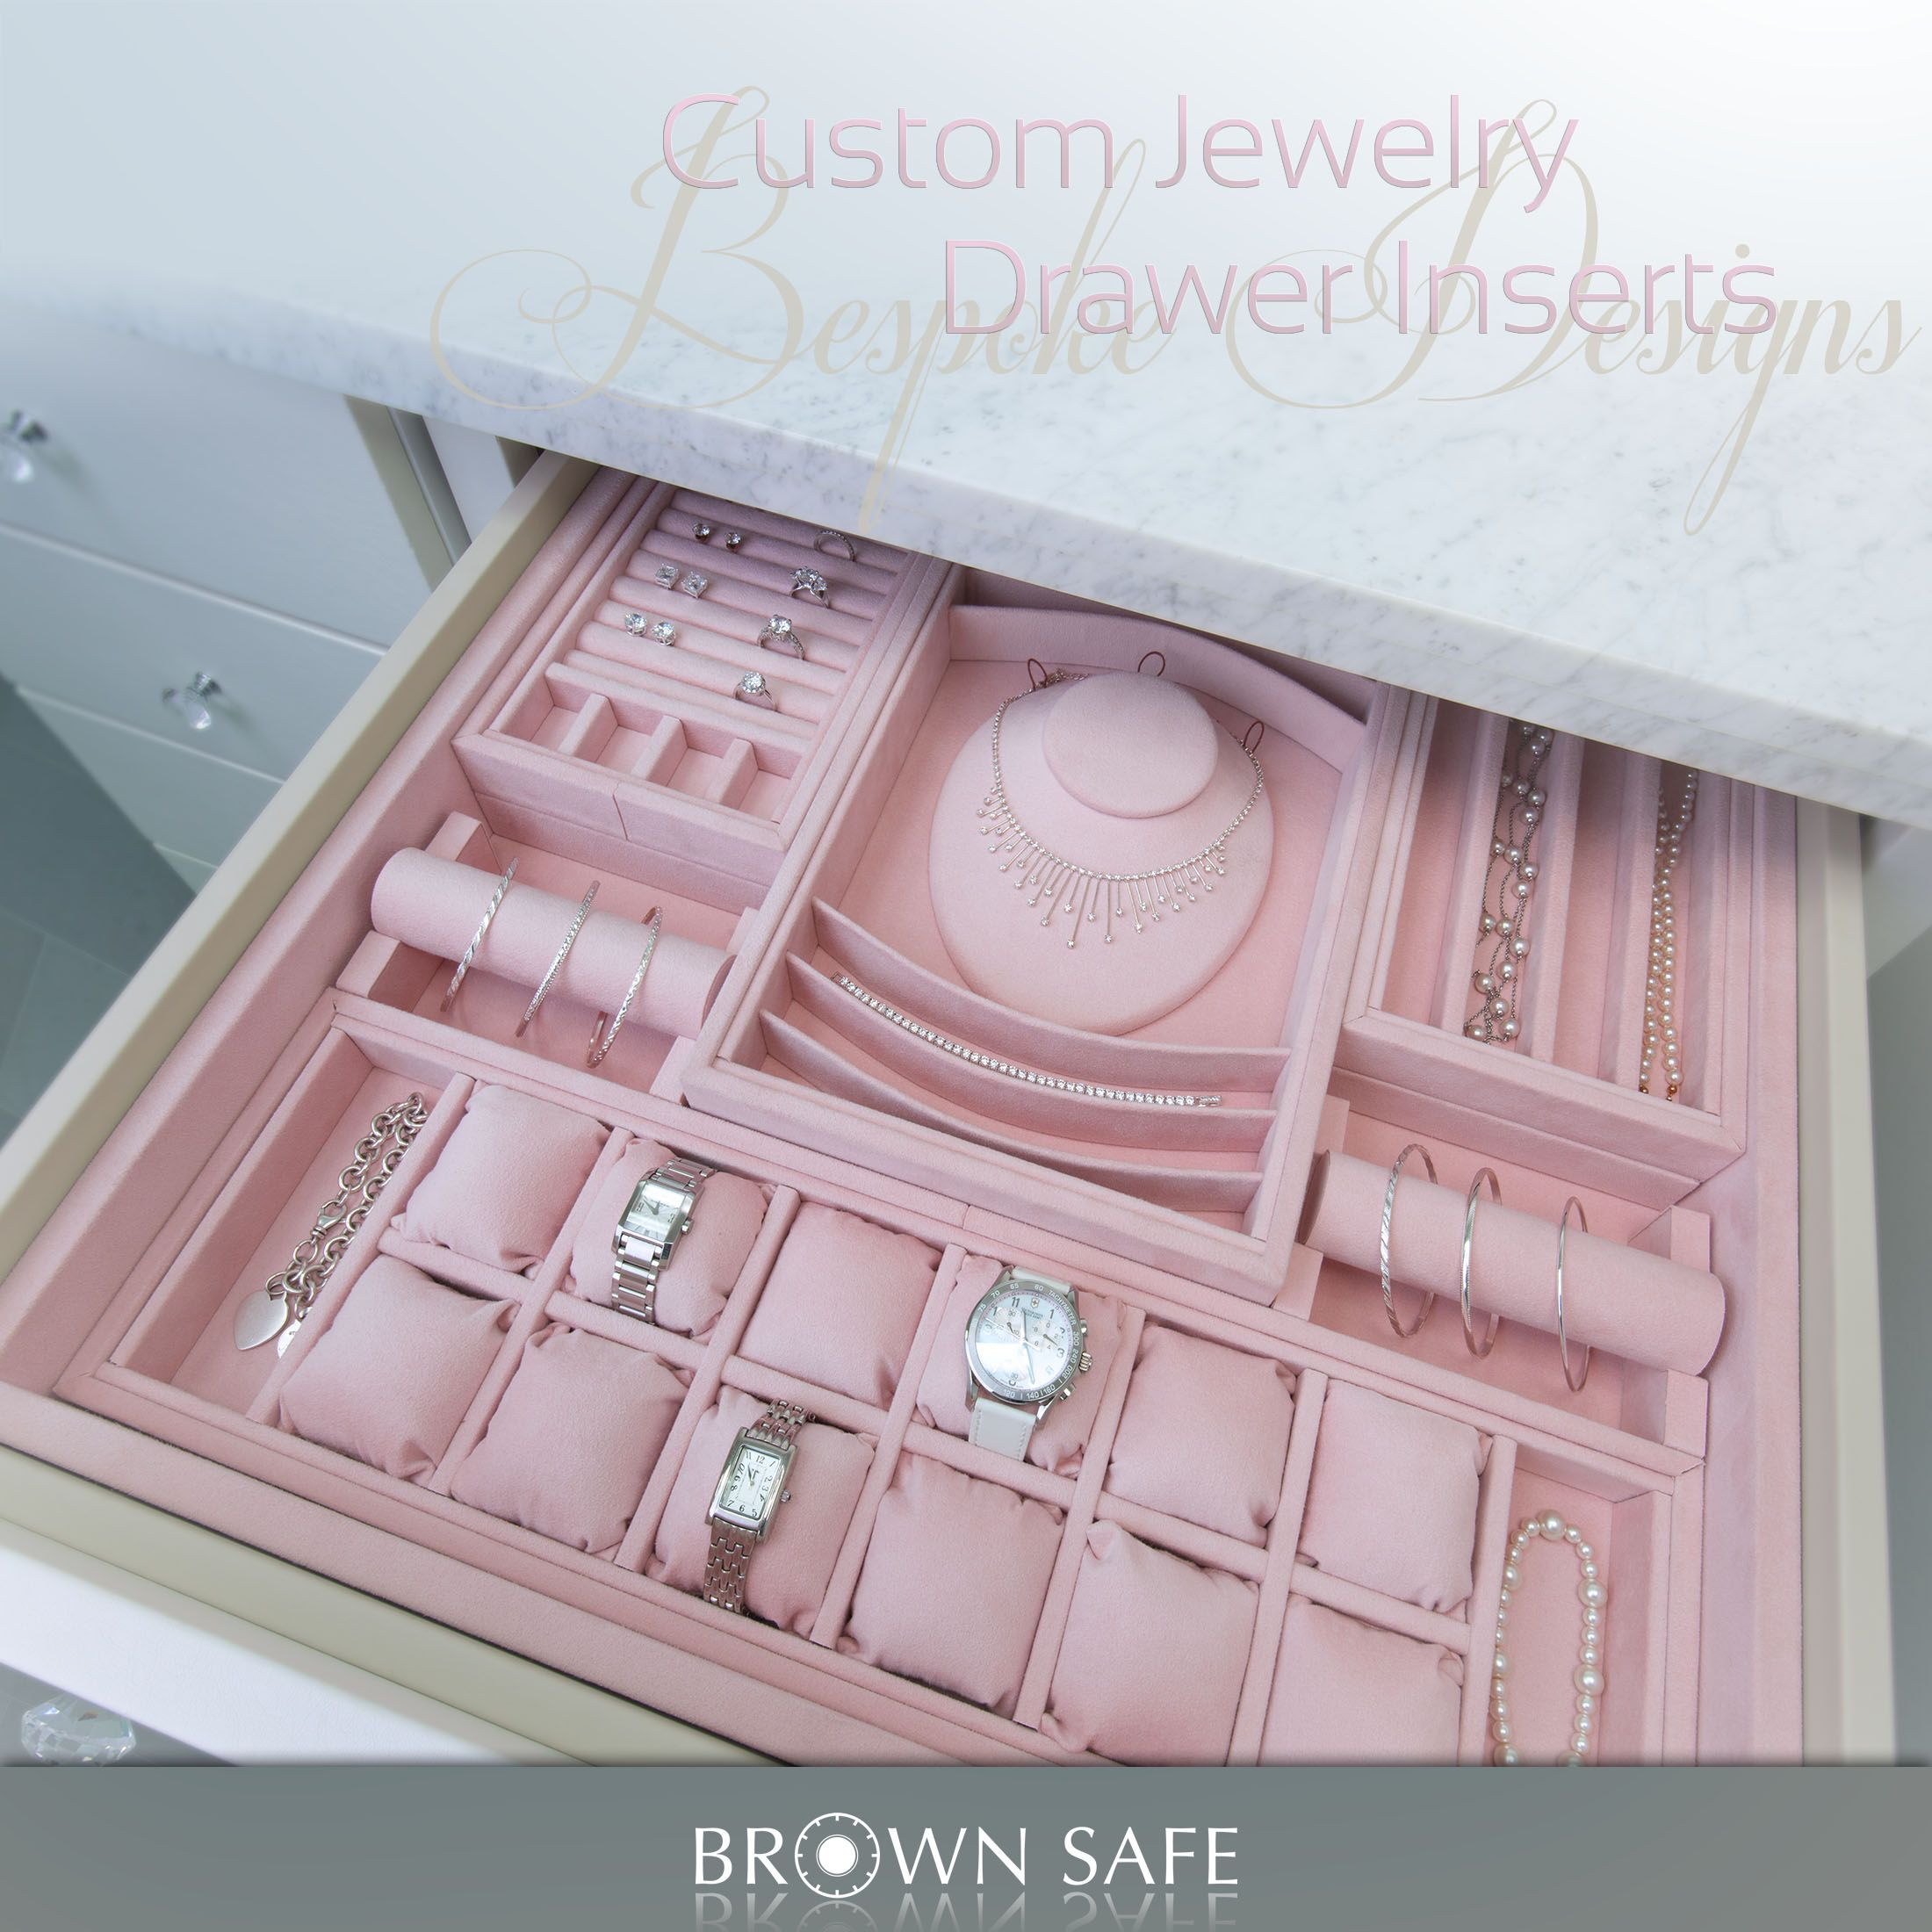 Ultrasuede Lined Drawer Inserts For Jewelry Perfectly